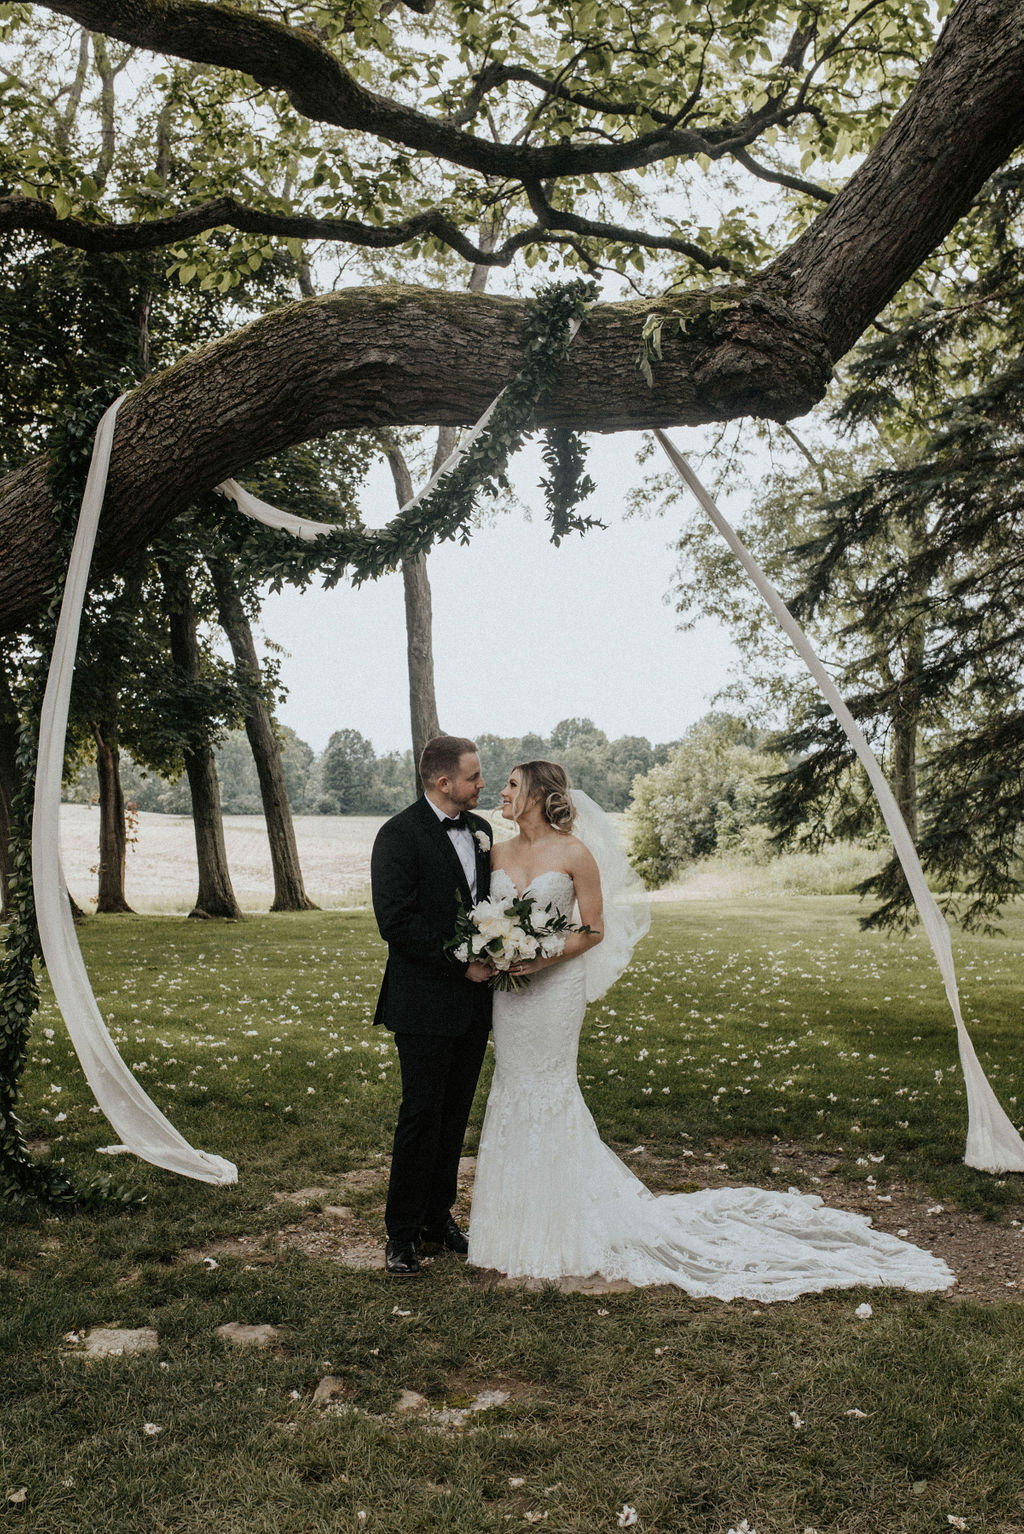 A couple smiling in front of their ceremony tree